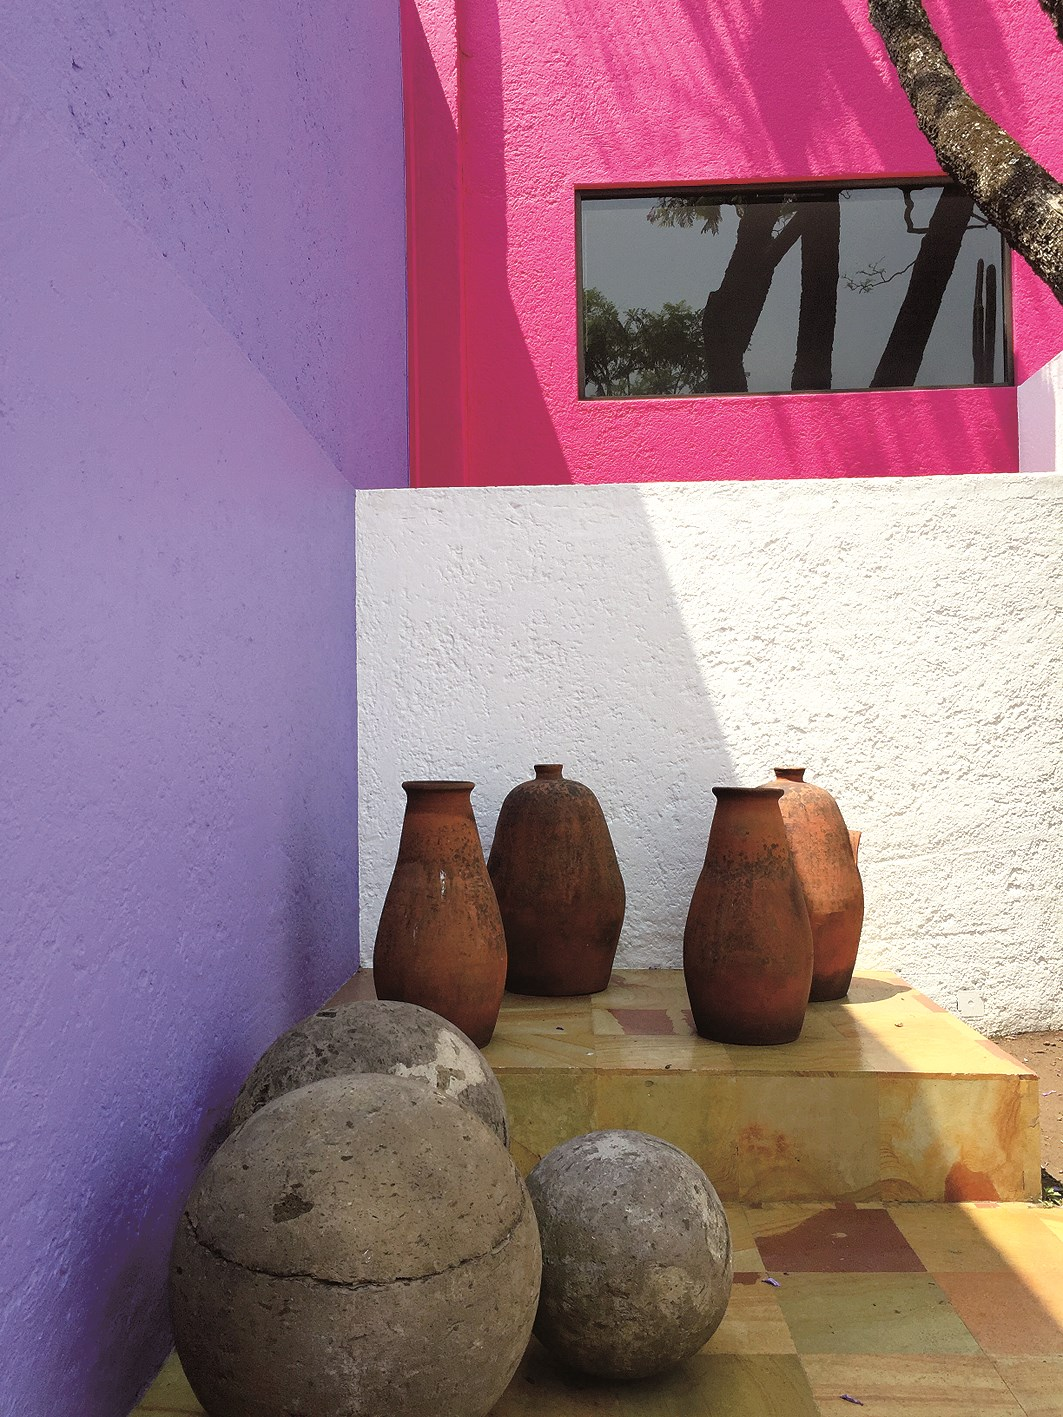 Tequila jars stand prominent in the courtyard